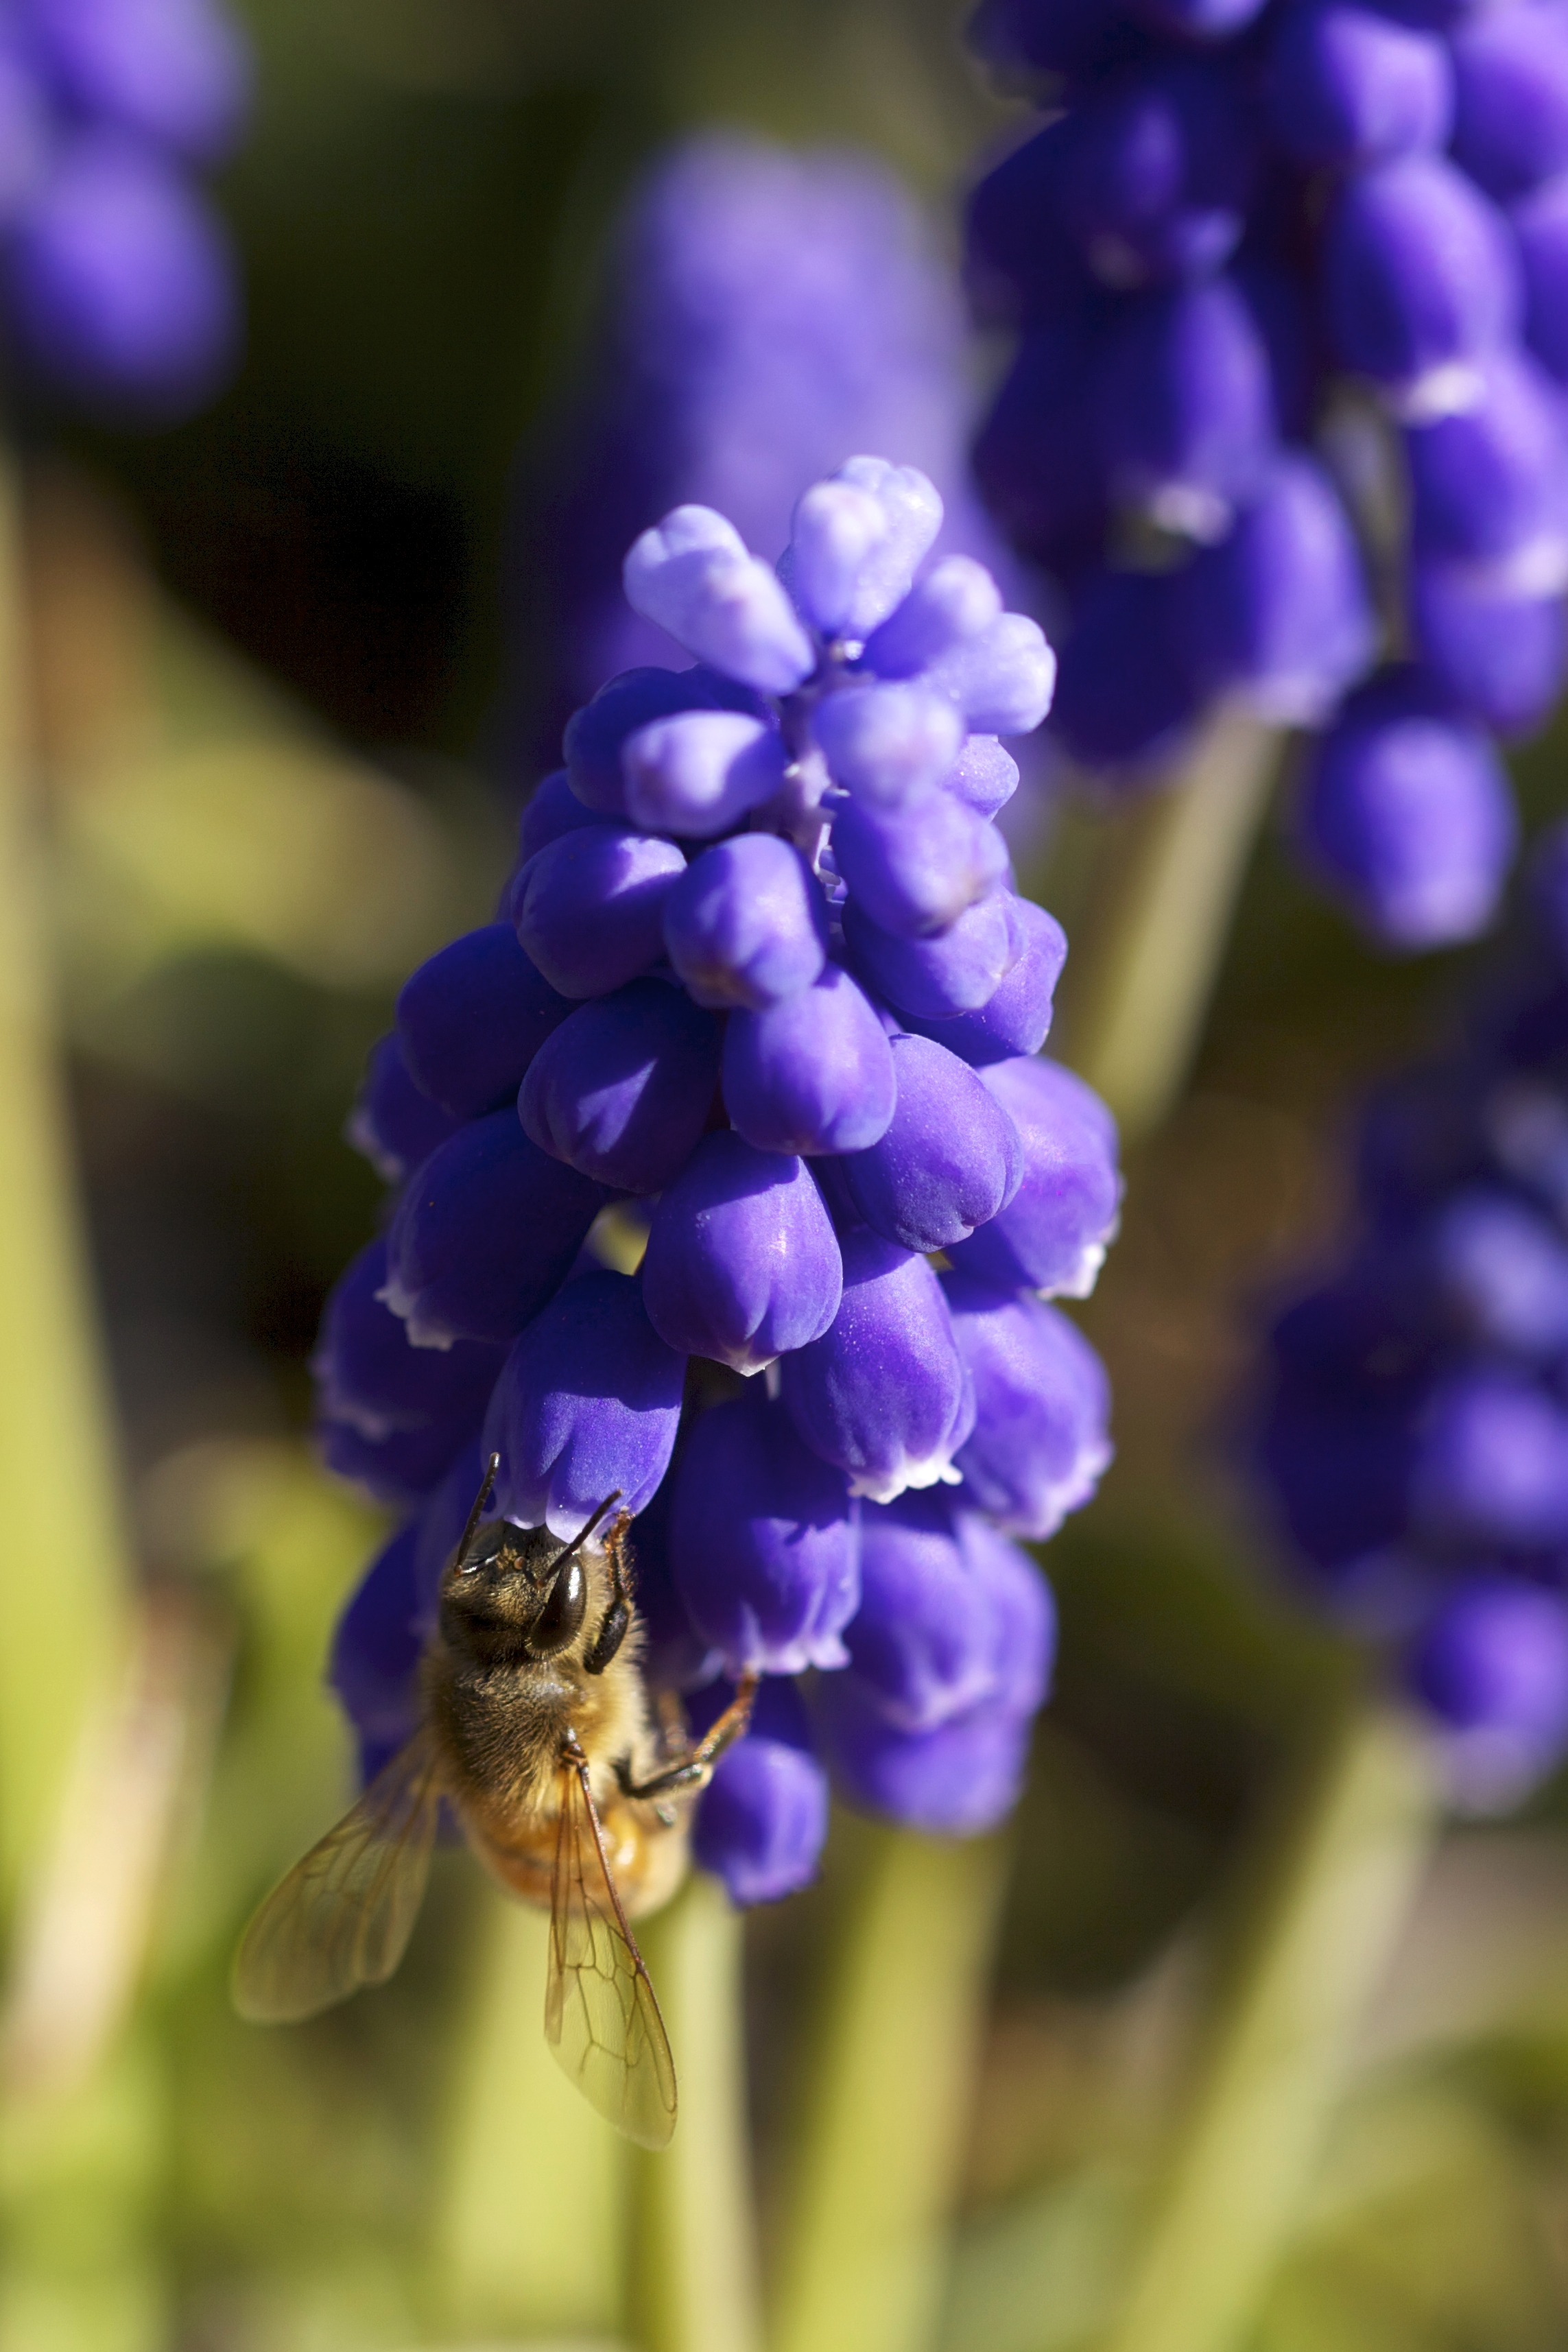 And a honeybee drinking deep in another.